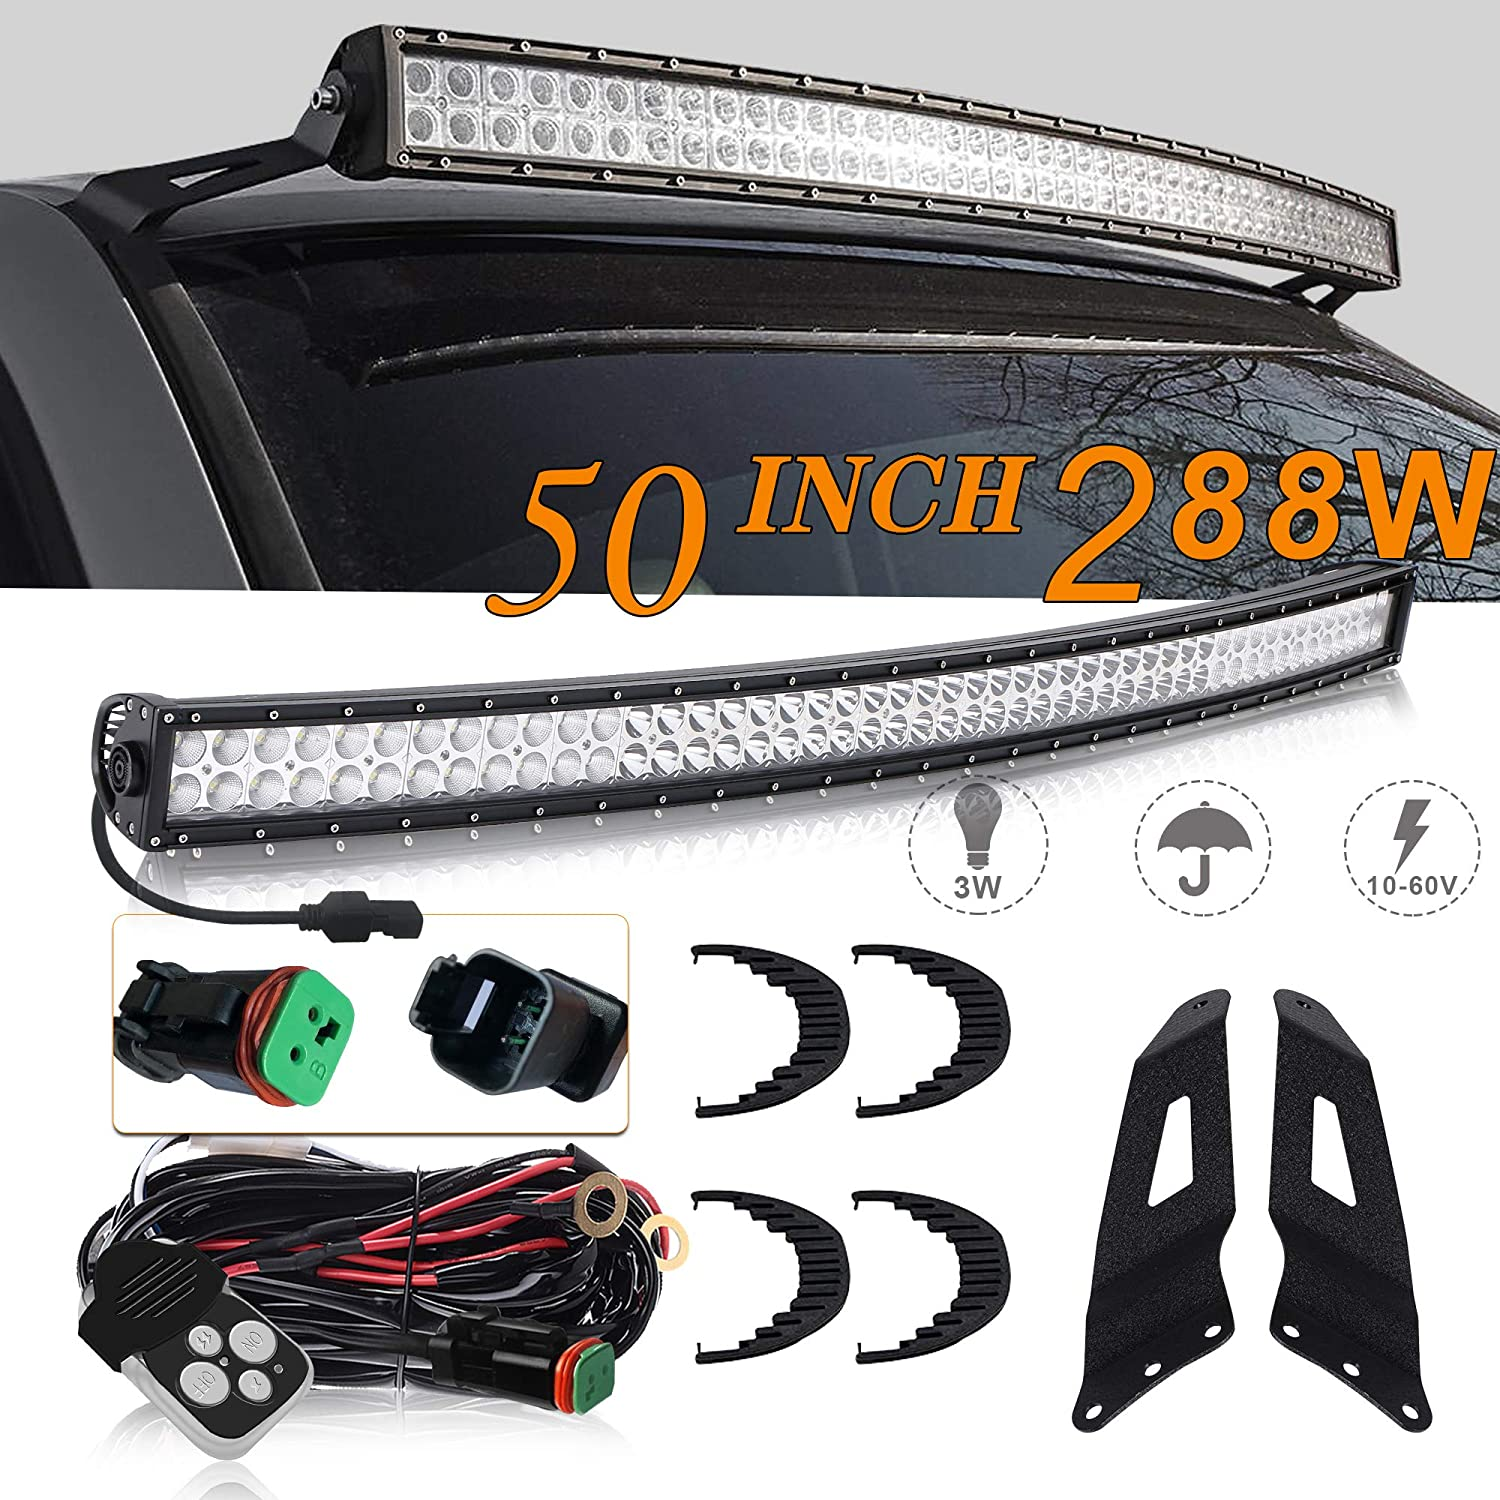 UNI FILTER DOT Approved 50 Inch 288W Curved LED Light Bar Offroad W/ Remote Switch DT Connector For Chevy Silverado 1500 2500 3500 Chevy Avalanche Chevy Tahoe Chevy Suburban 1500 2500 GMC Sierra 1500 2500 3500